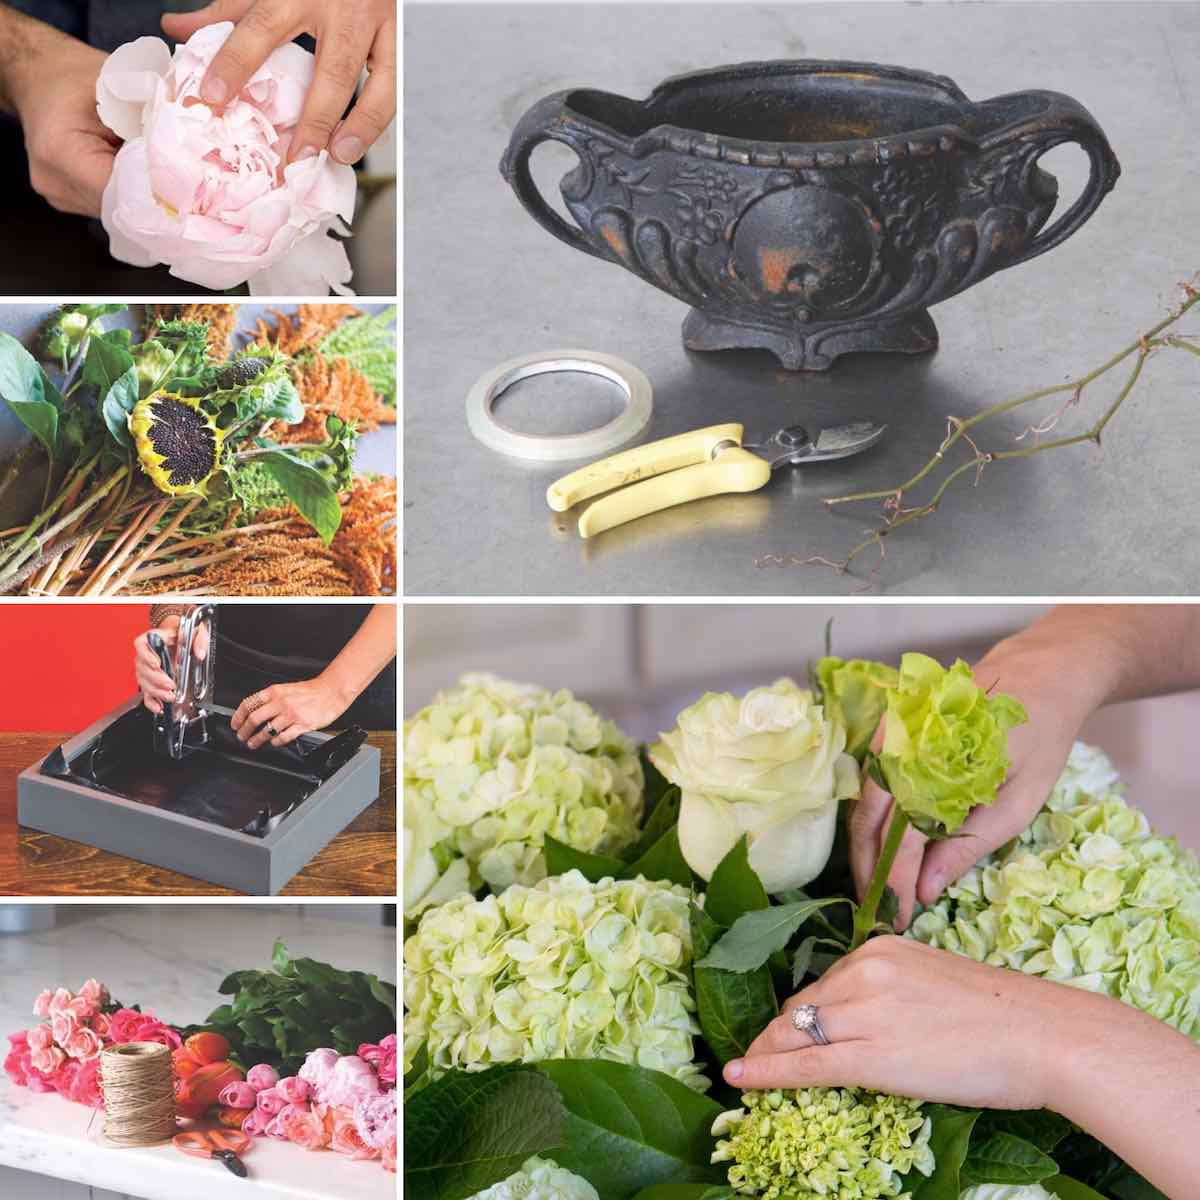 How To Make Floral Arrangements 10 step-by-step arrangements we love - flower magazine